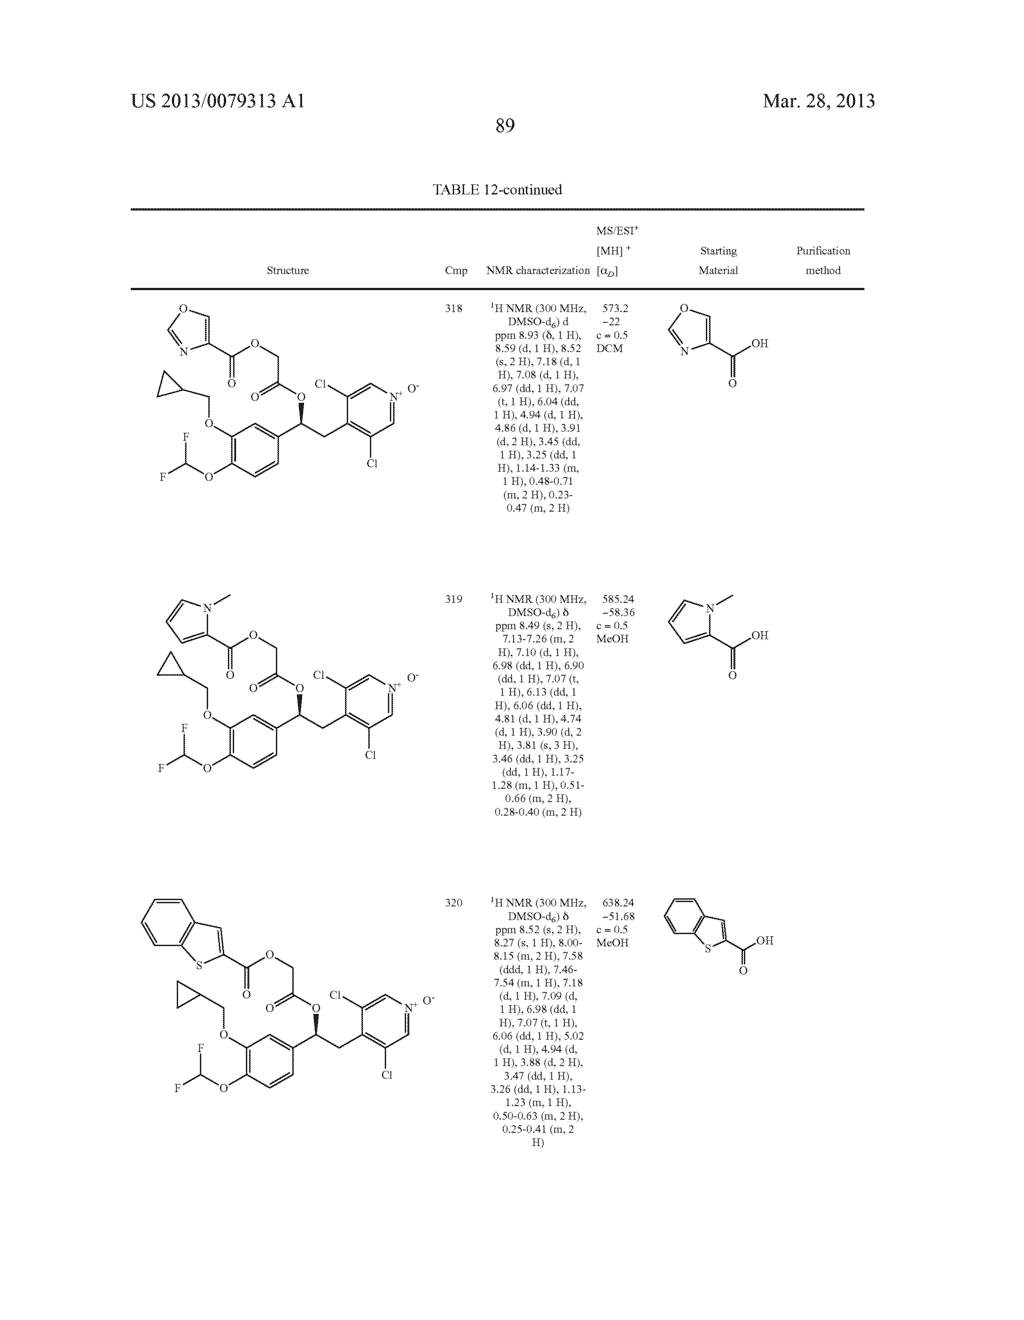 DERIVATIVES OF 1-PHENYL-2-PYRIDINYL ALKYL ALCOHOLS AS PHOSPHODIESTERASE     INHIBITORS - diagram, schematic, and image 90